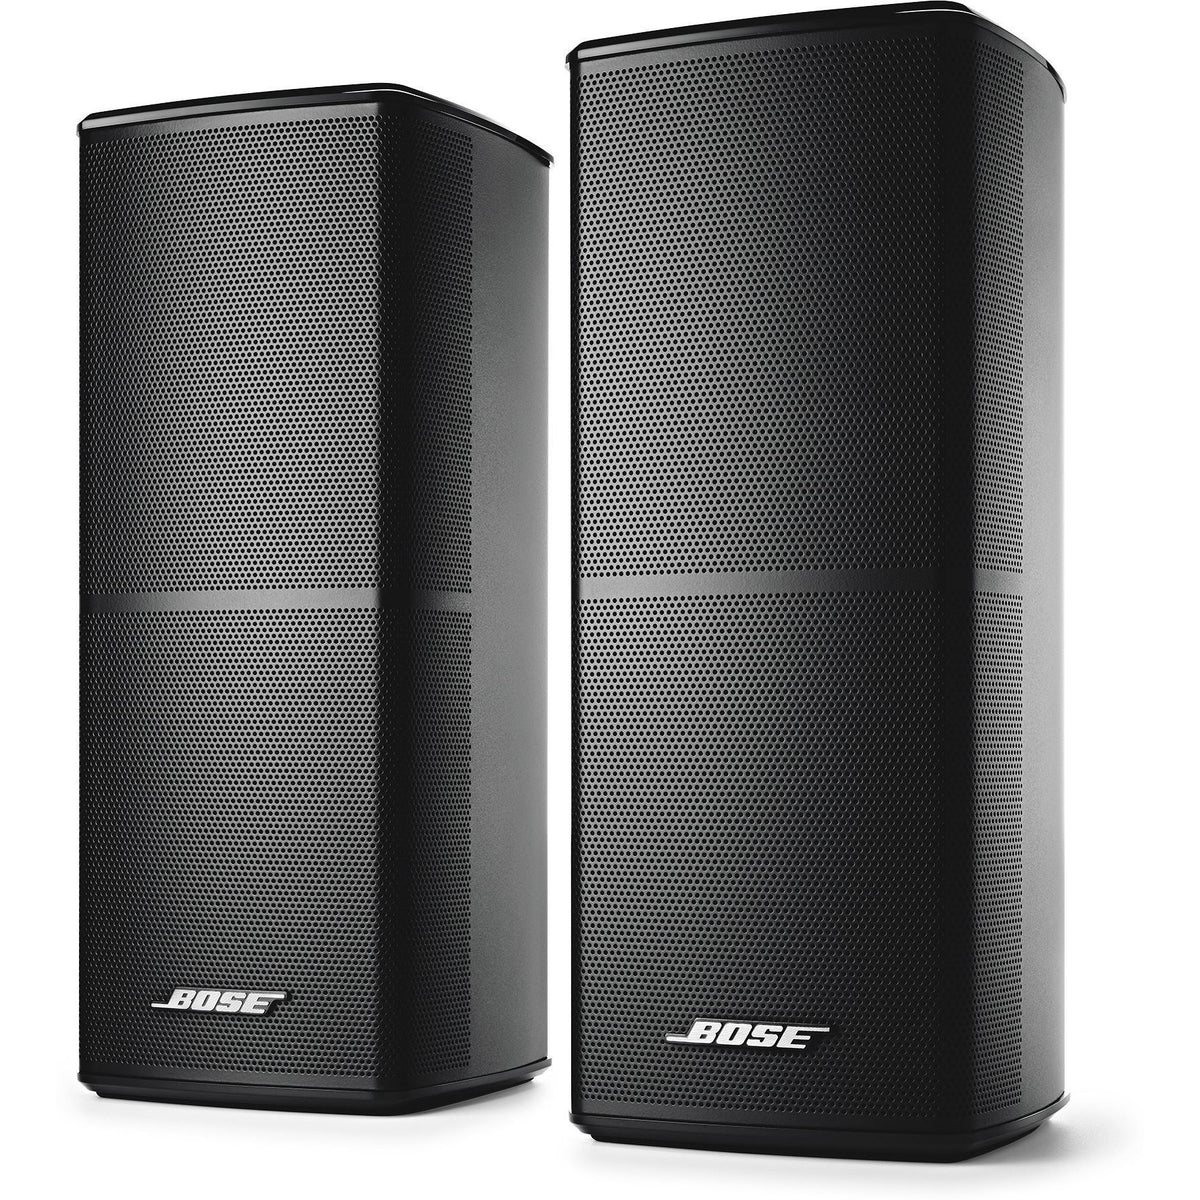 Bose Lifestyle 600 Home Entertainment System, Black